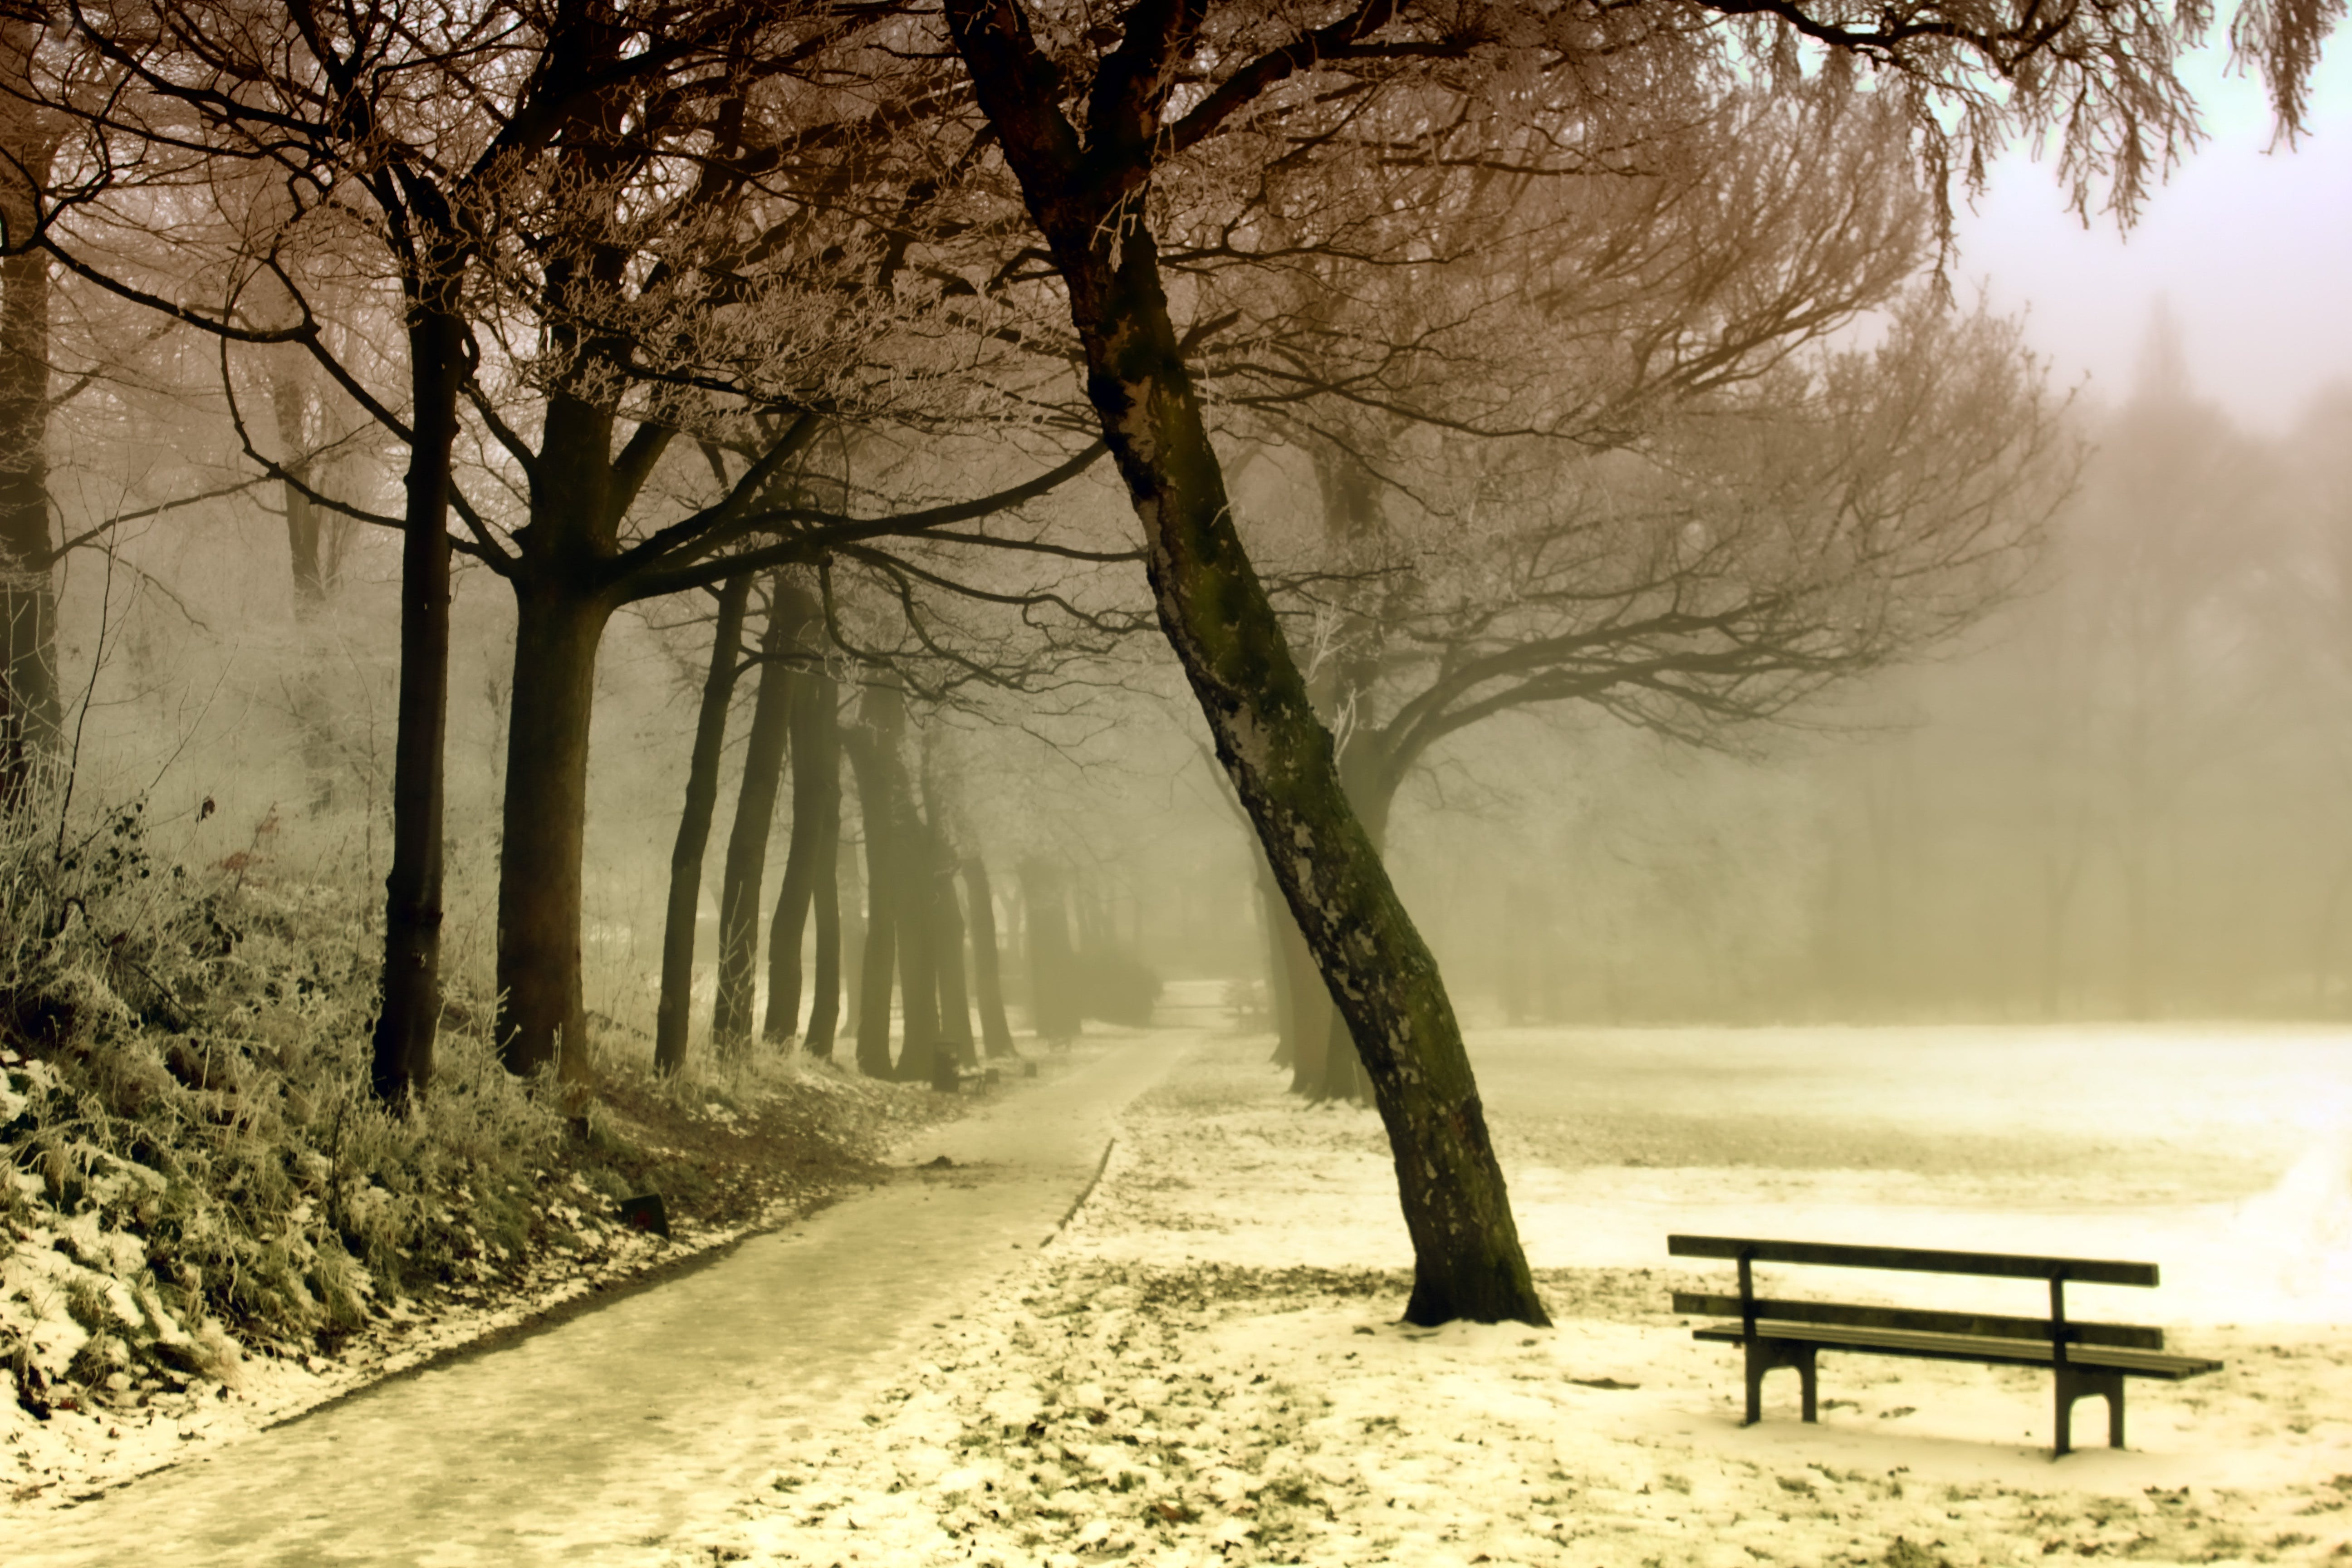 Road Beside Tree and Black Wooden Bench